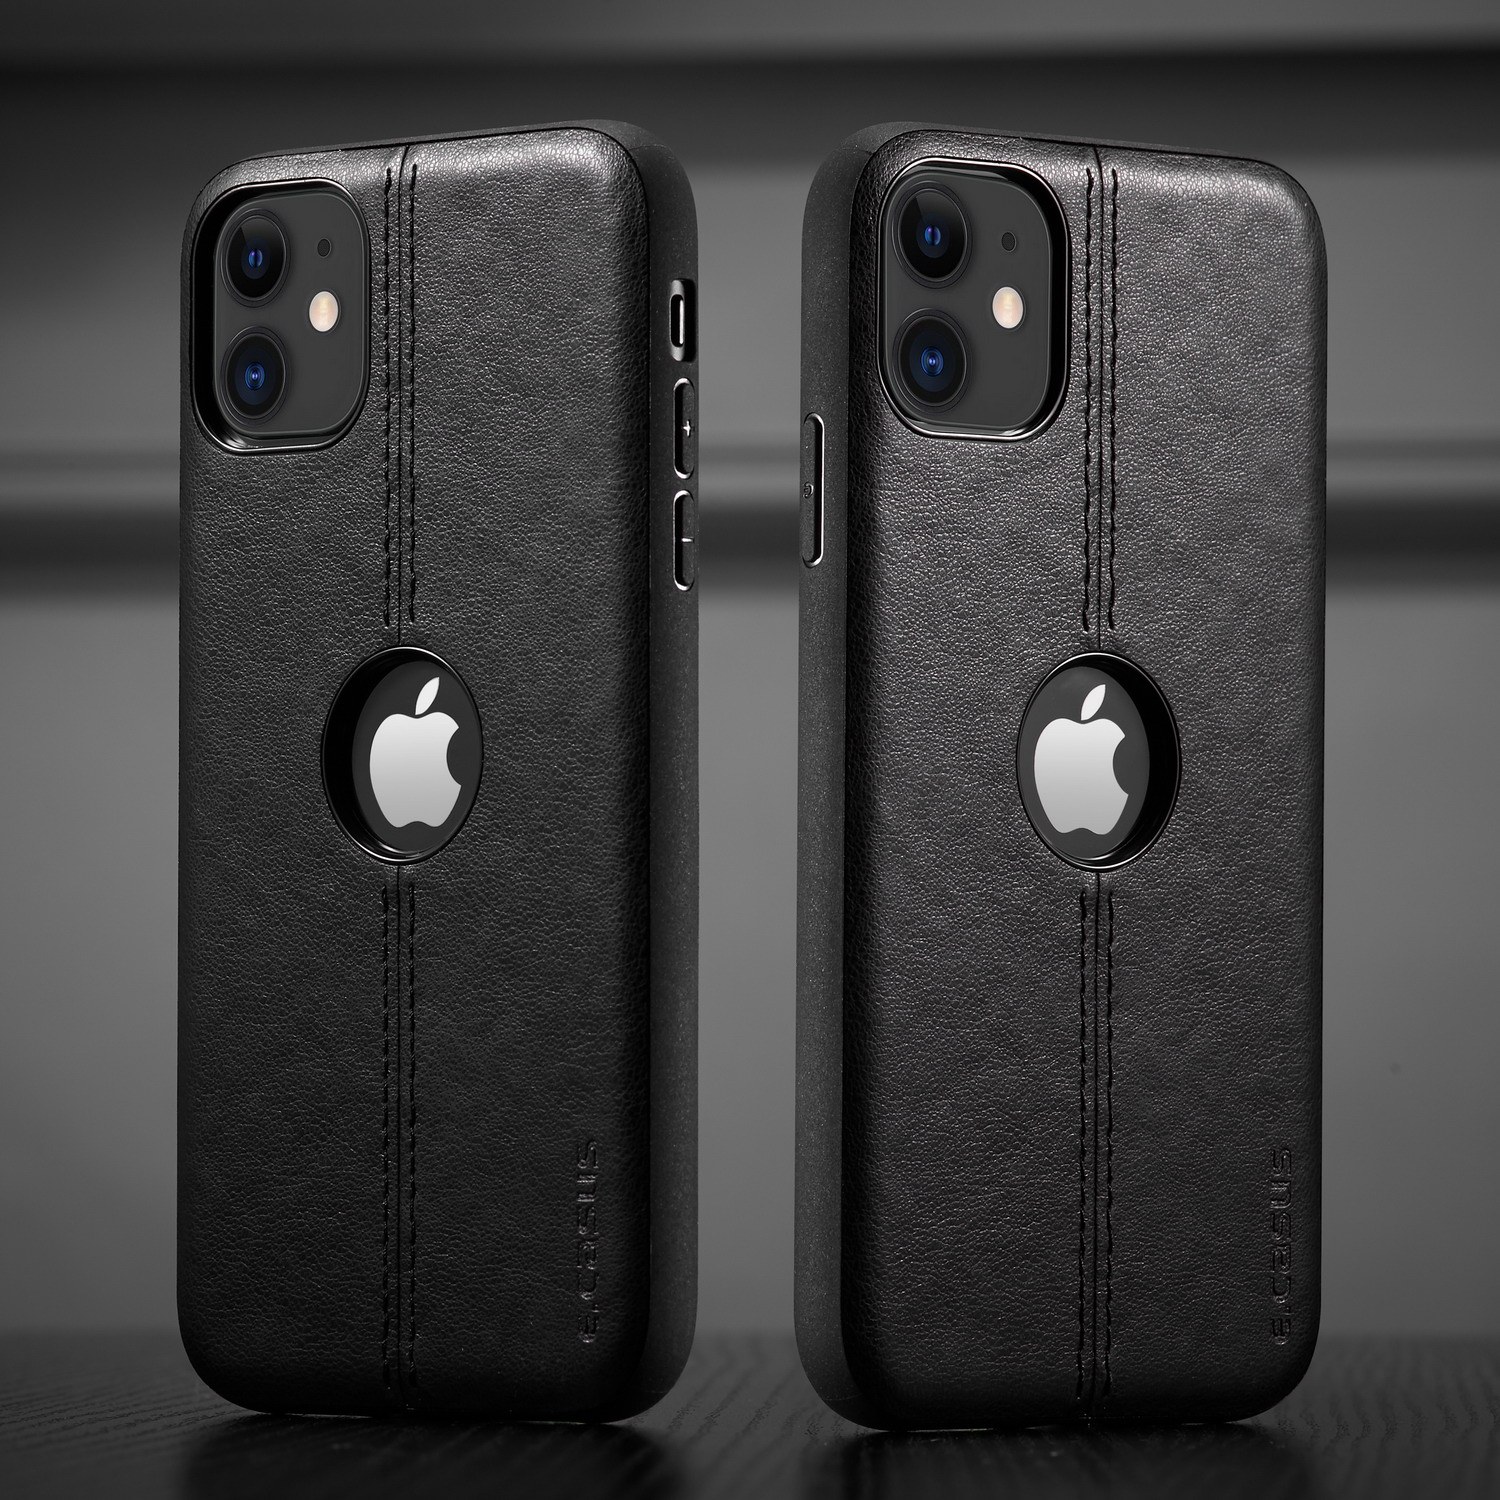 Hb3c357a3e10b49f1b9f0e3a3967257a2b For iPhone 11 11 Pro 11 Pro Max Case New SLIM Luxury Leather Back Case Cover For iPhone 11 XR XS MAX 8 7 6 Plus Shockproof Case